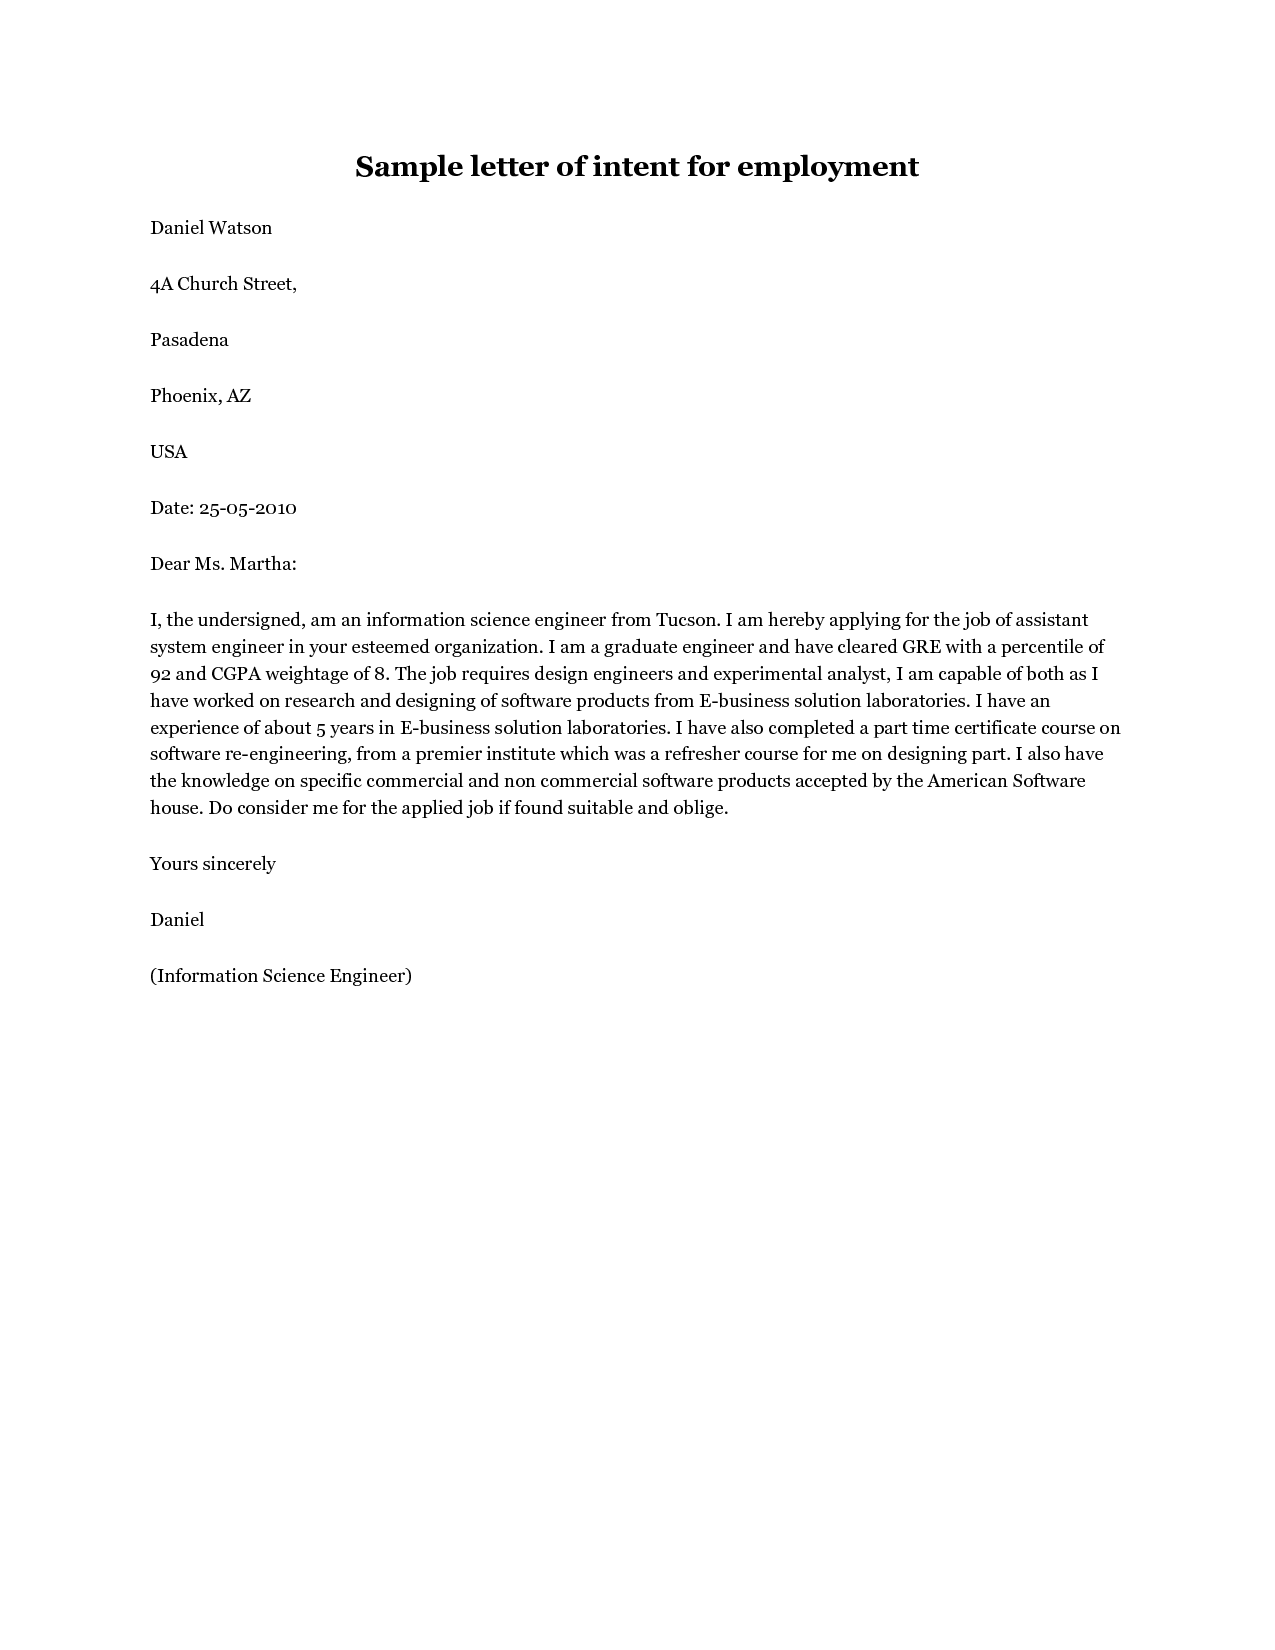 letter of intent for job sample letter of intent application sample letter of 22977 | Sample Letter of Intent Job Application sample letter of intent for employment